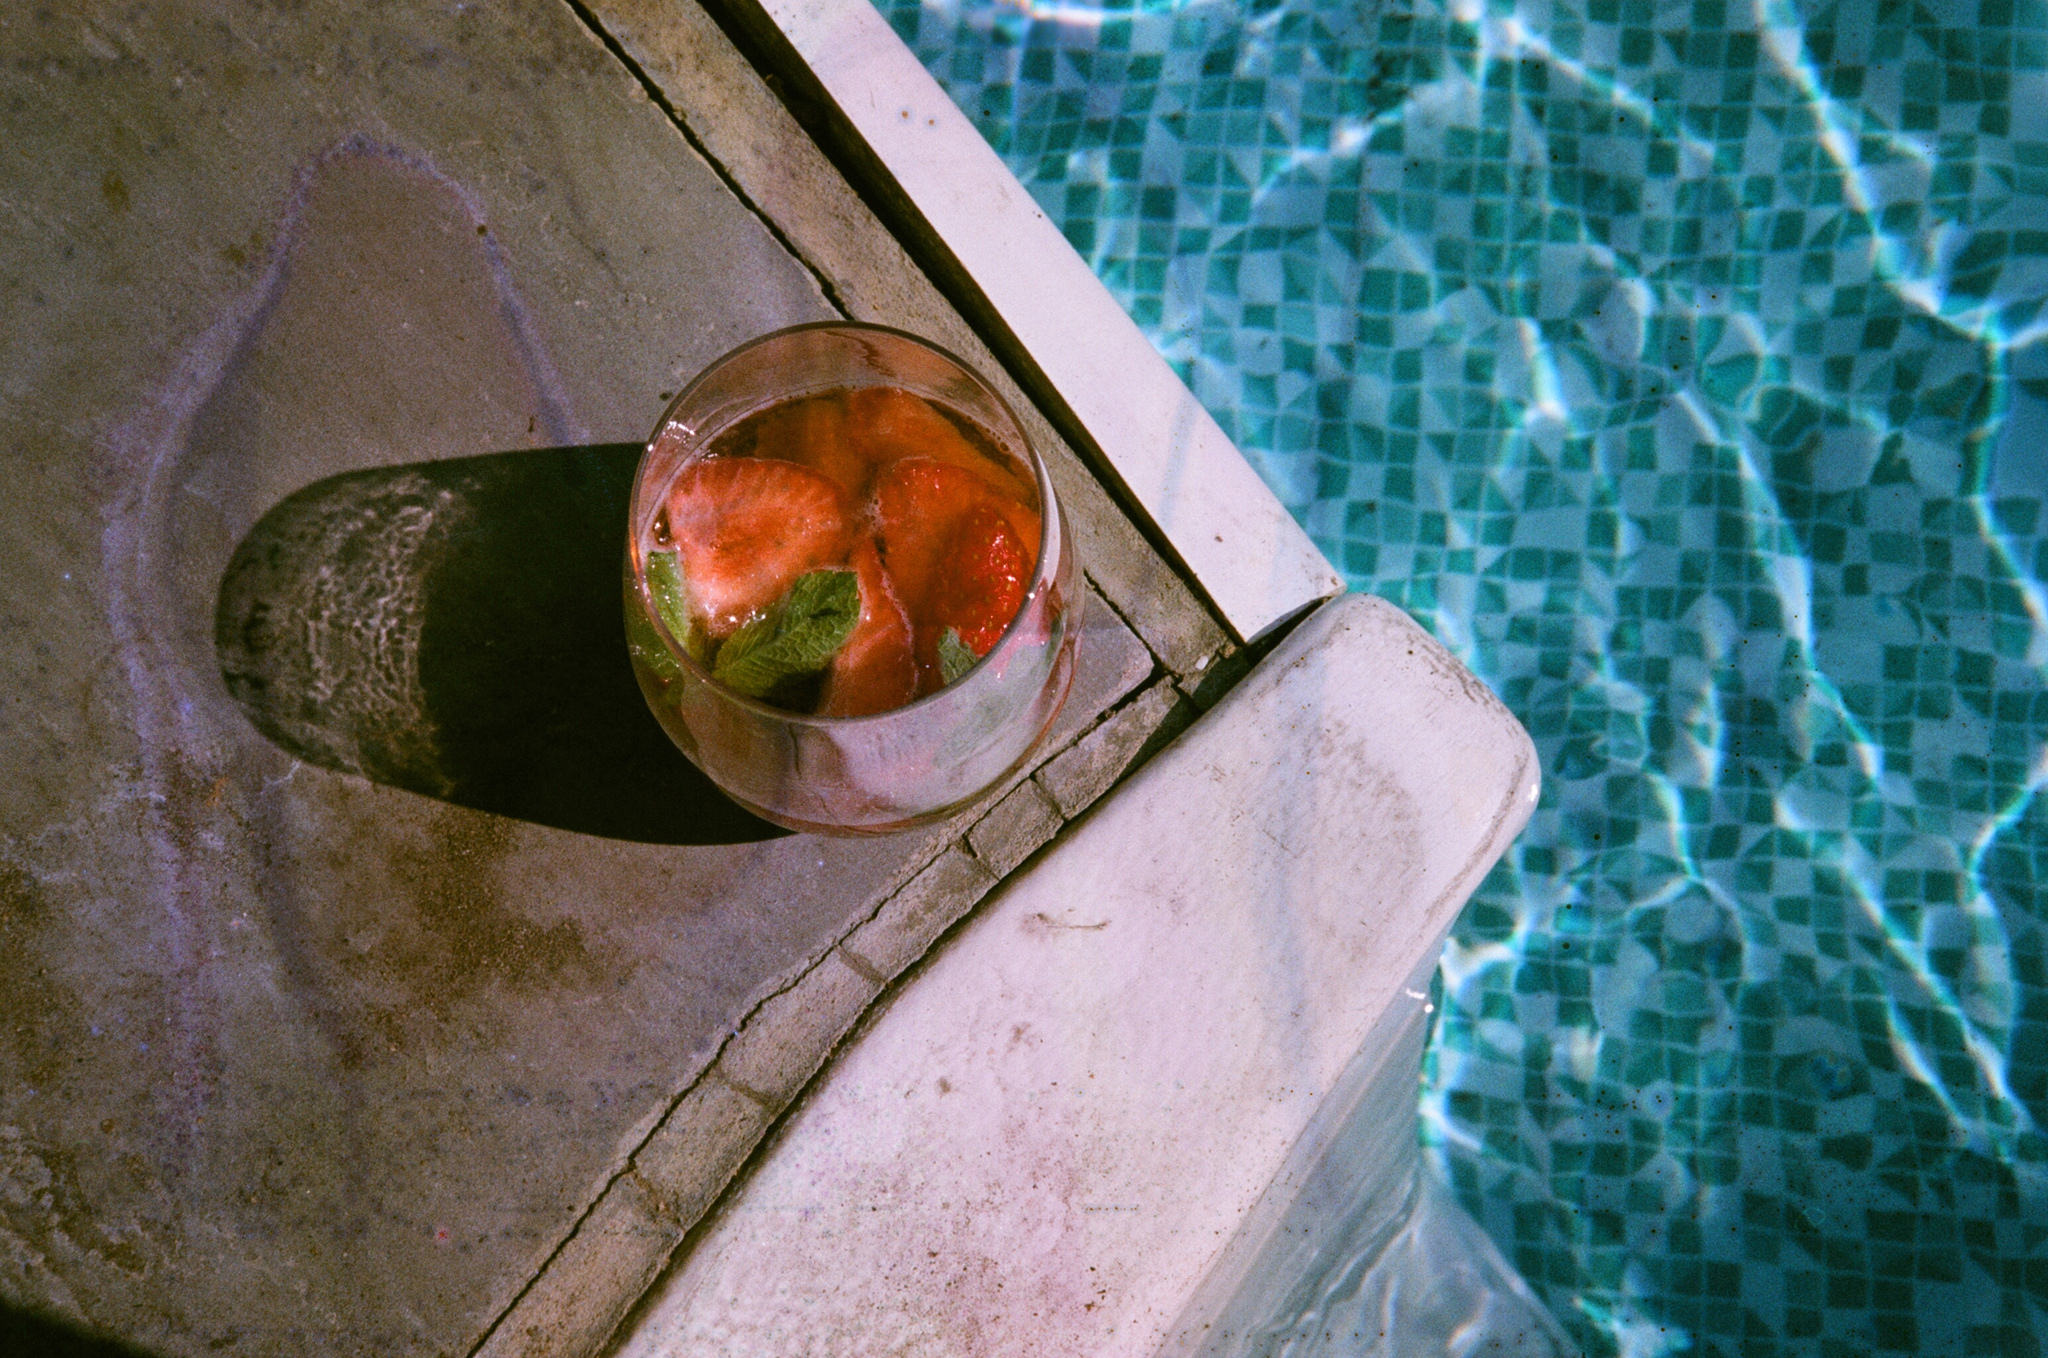 Pimms and the pool on 35mm.